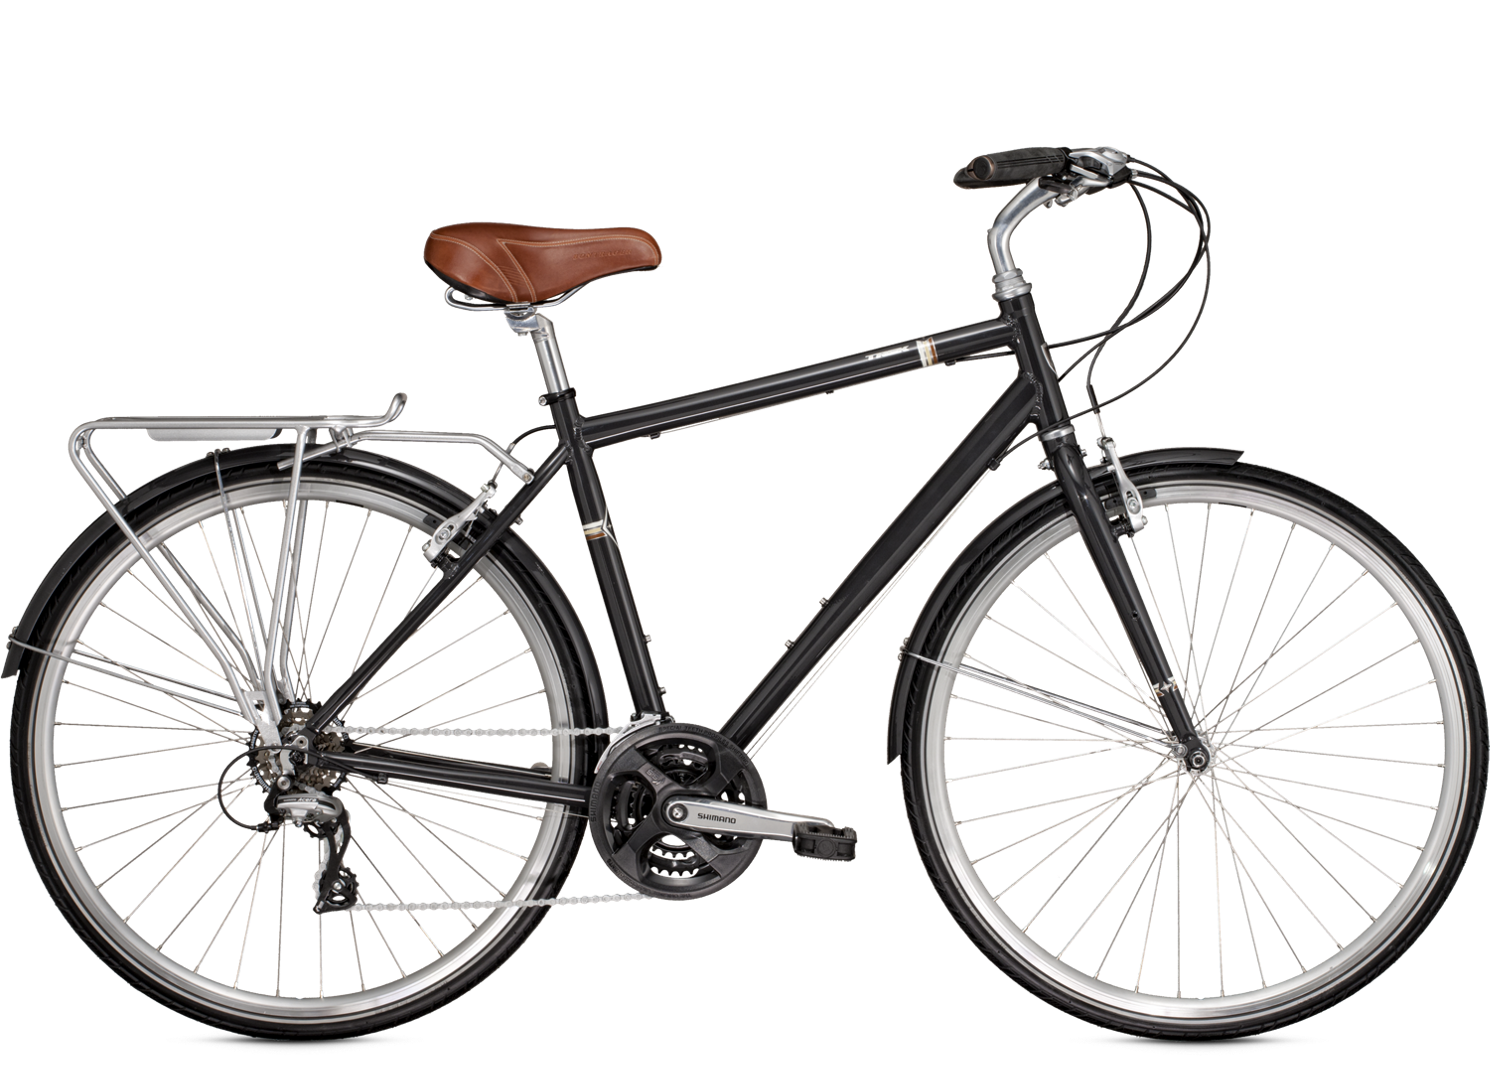 Classic Black Bicycle 1443.97 Kb